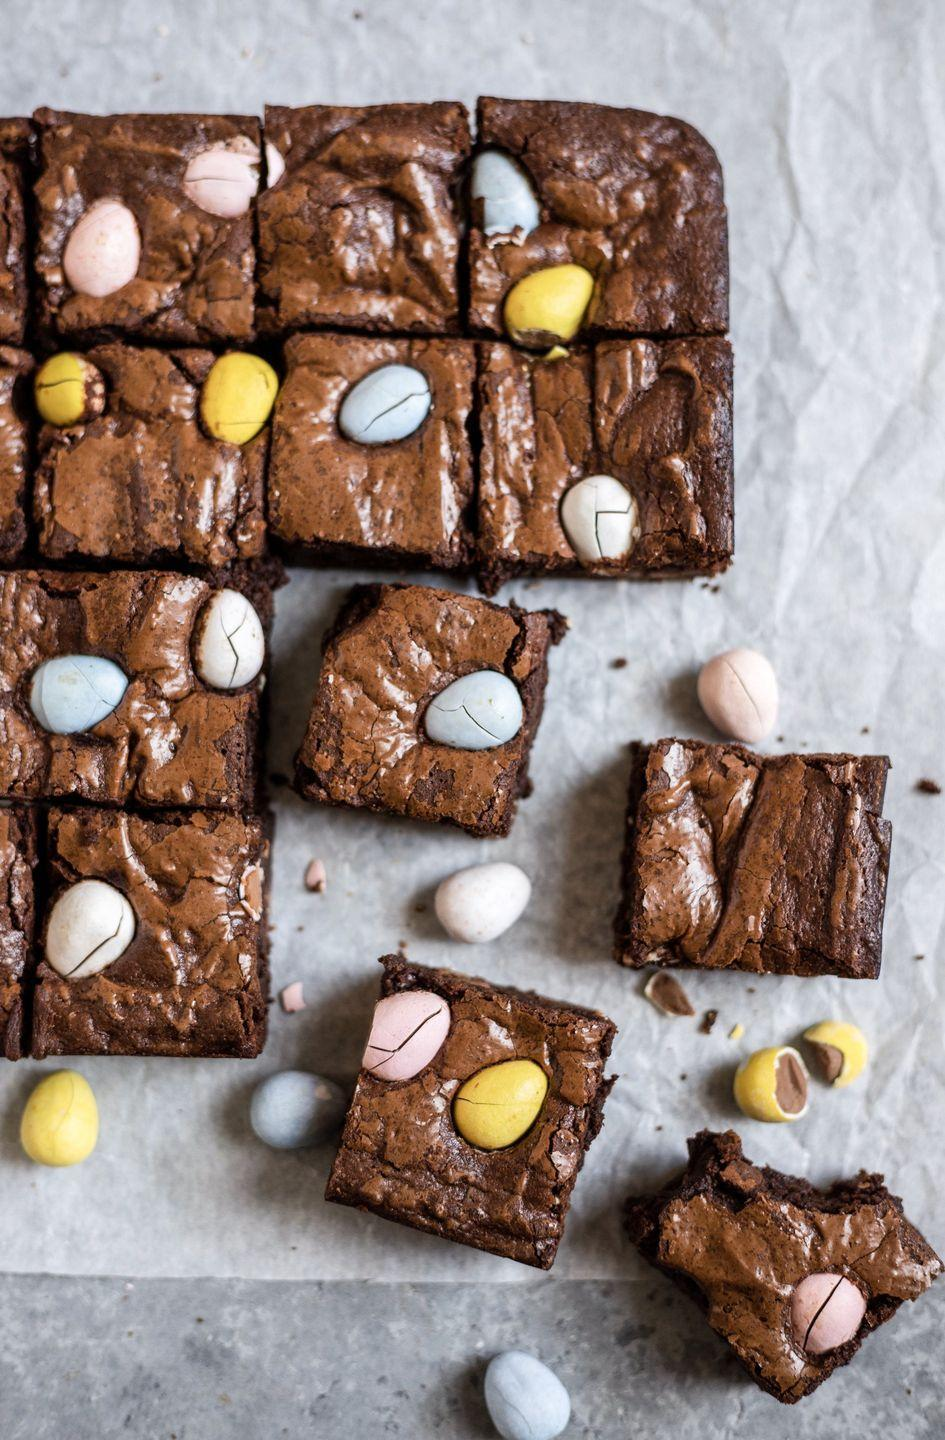 "<p>Add an extra dose of chocolate to these fudgy brownies by putting a handful of mini eggs on top.</p><p><strong>Get the recipe at <a href=""https://mikebakesnyc.com/mini-egg-brownies/"" rel=""nofollow noopener"" target=""_blank"" data-ylk=""slk:Mike Bakes NYC"" class=""link rapid-noclick-resp"">Mike Bakes NYC</a>.</strong></p><p><strong><a class=""link rapid-noclick-resp"" href=""https://go.redirectingat.com?id=74968X1596630&url=https%3A%2F%2Fwww.walmart.com%2Fsearch%2F%3Fquery%3Dparchment%2Bpaper&sref=https%3A%2F%2Fwww.thepioneerwoman.com%2Ffood-cooking%2Fmeals-menus%2Fg35408493%2Feaster-desserts%2F"" rel=""nofollow noopener"" target=""_blank"" data-ylk=""slk:SHOP PARCHMENT PAPER"">SHOP PARCHMENT PAPER</a><br></strong></p>"